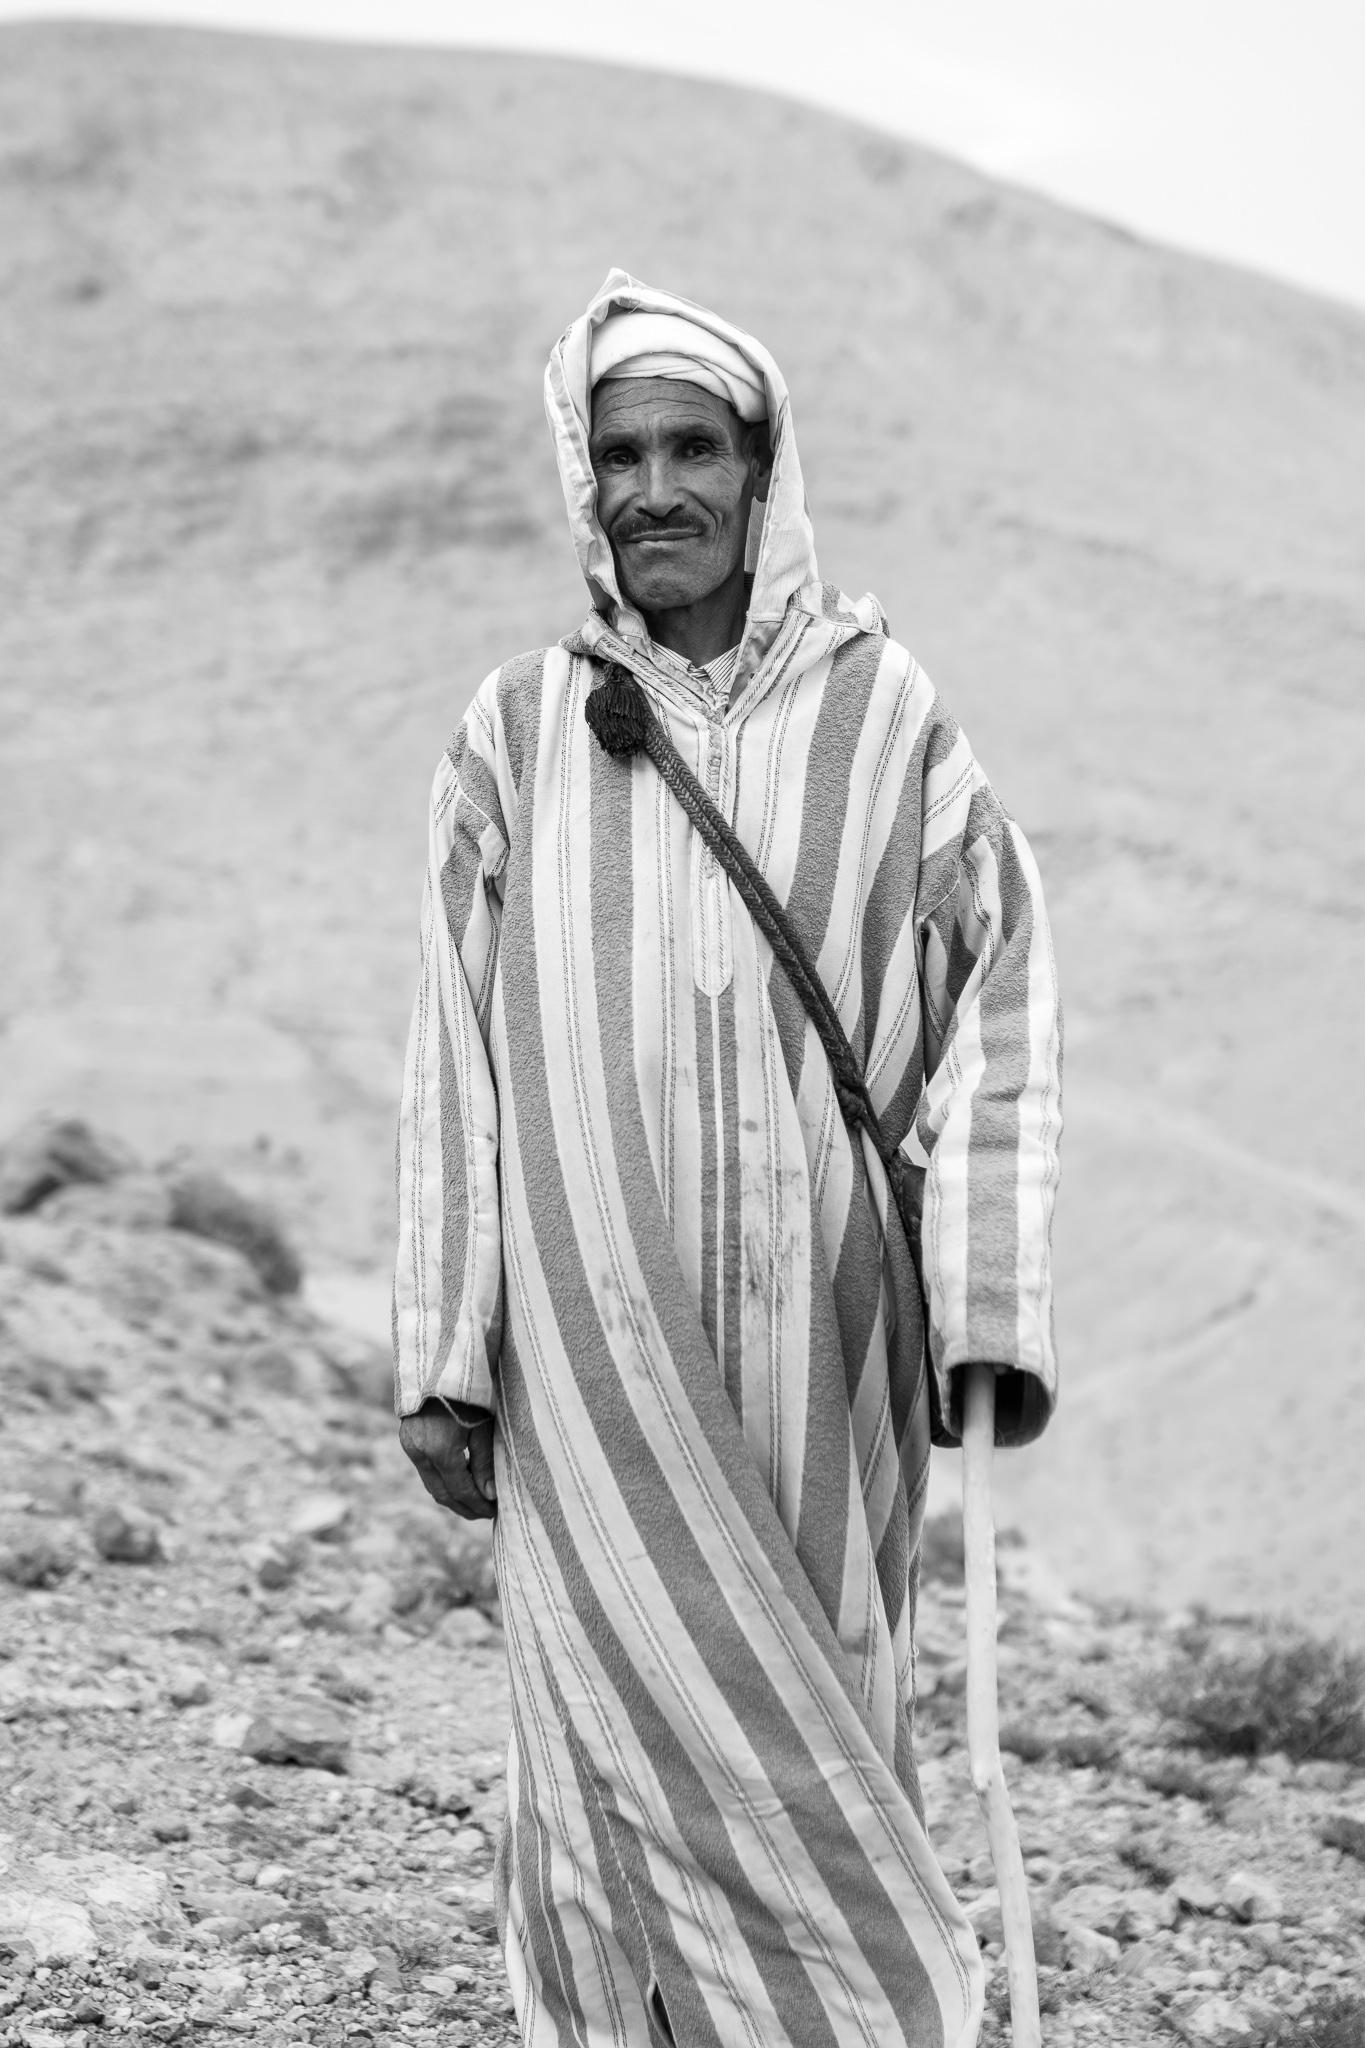 The Amazigh father of the nomadic families is mainly engaged in grazing and tending the family herd, which is their main source of food and can reach over a thousand sheep, goats and even camels. <br> After a year the nomads will exchange the work with one of their brothers.